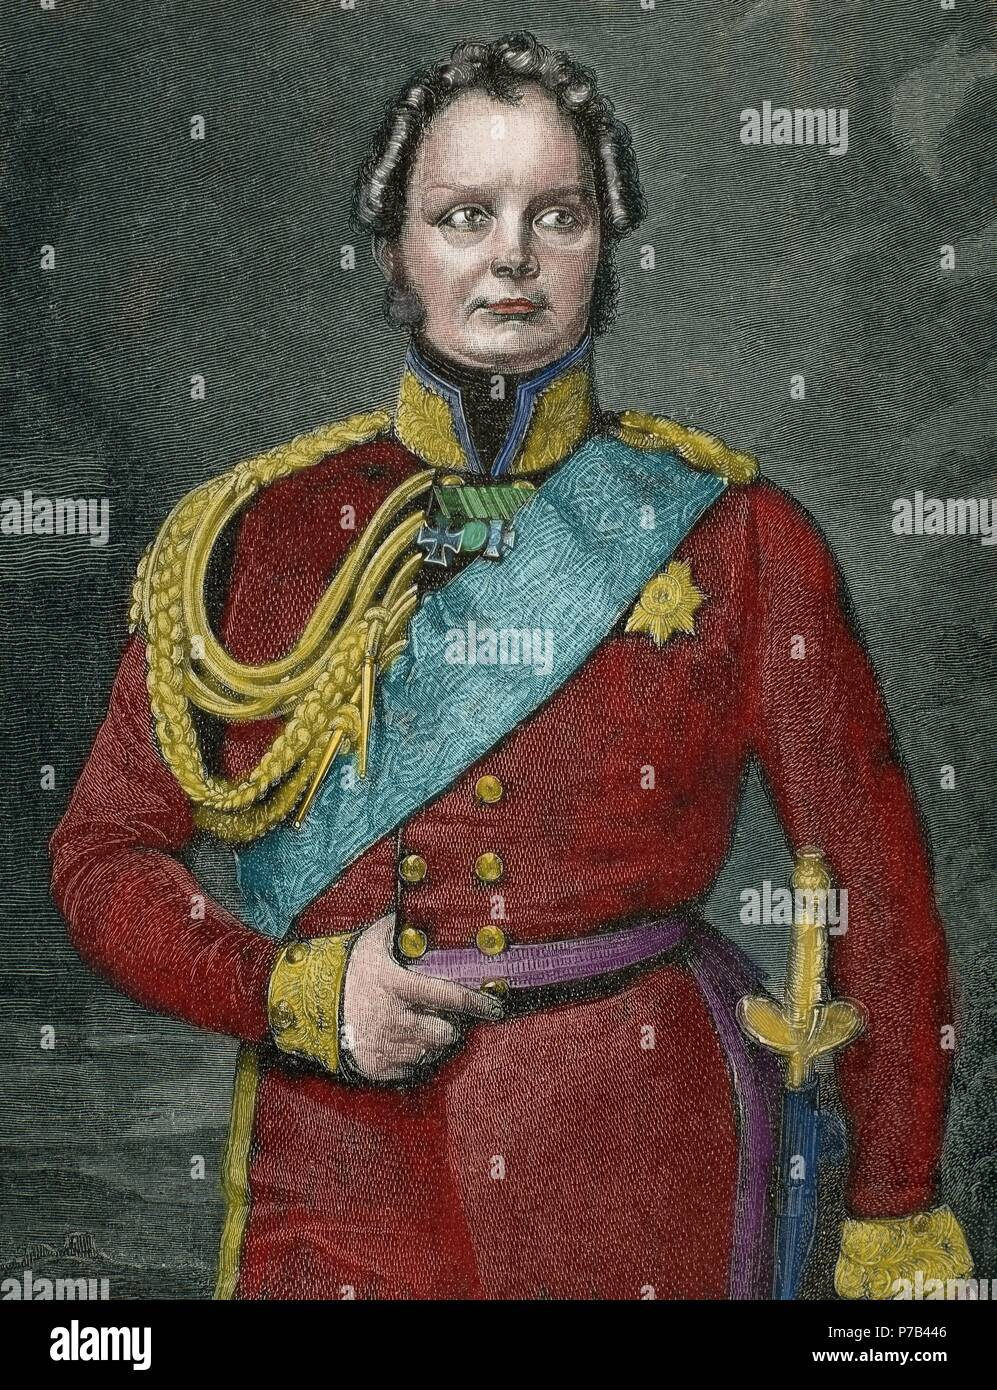 Frederick William IV of Prussia (1795-1861). King of Prusia 1840-1861. Portrait. Engraving by Niedermann. 19th century. Colored. - Stock Image